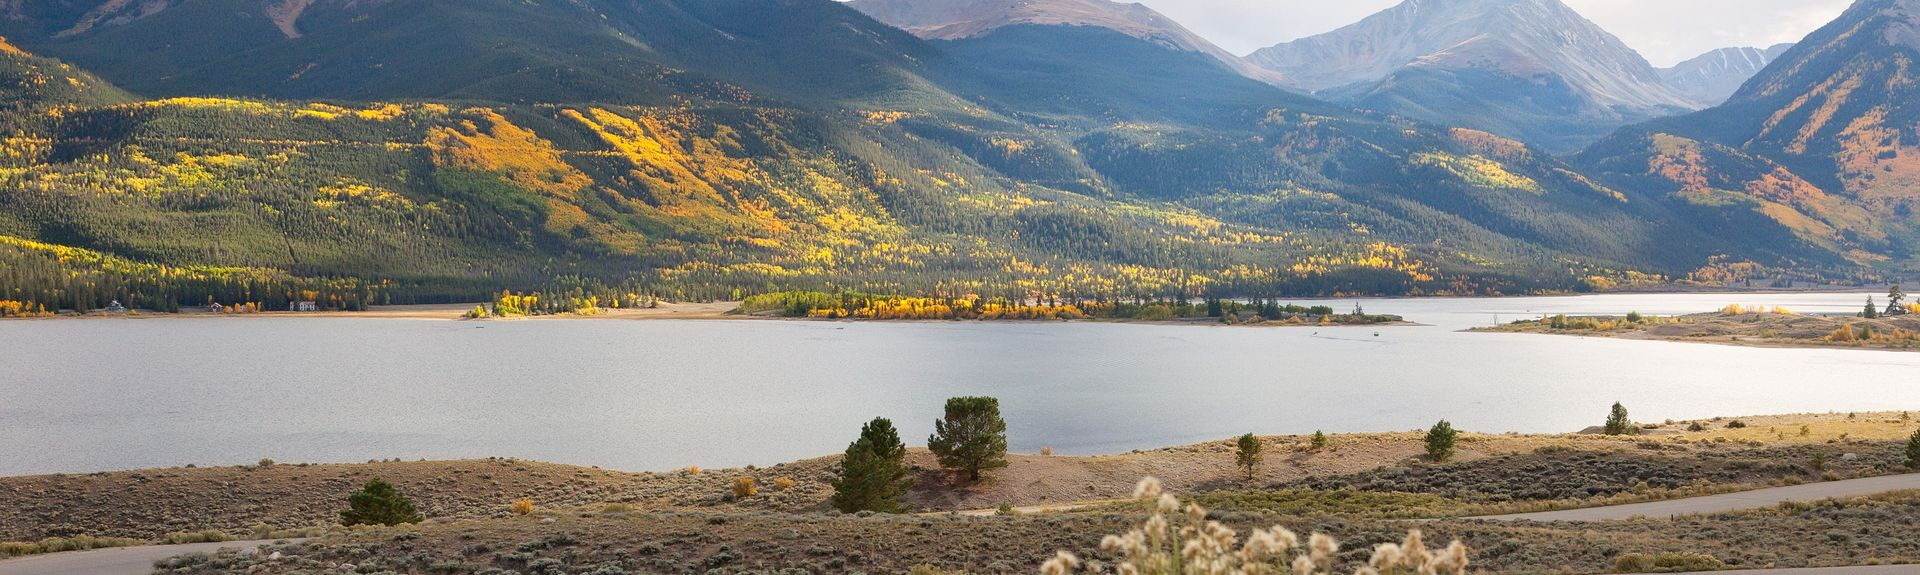 Twin Lakes, Colorado, USA